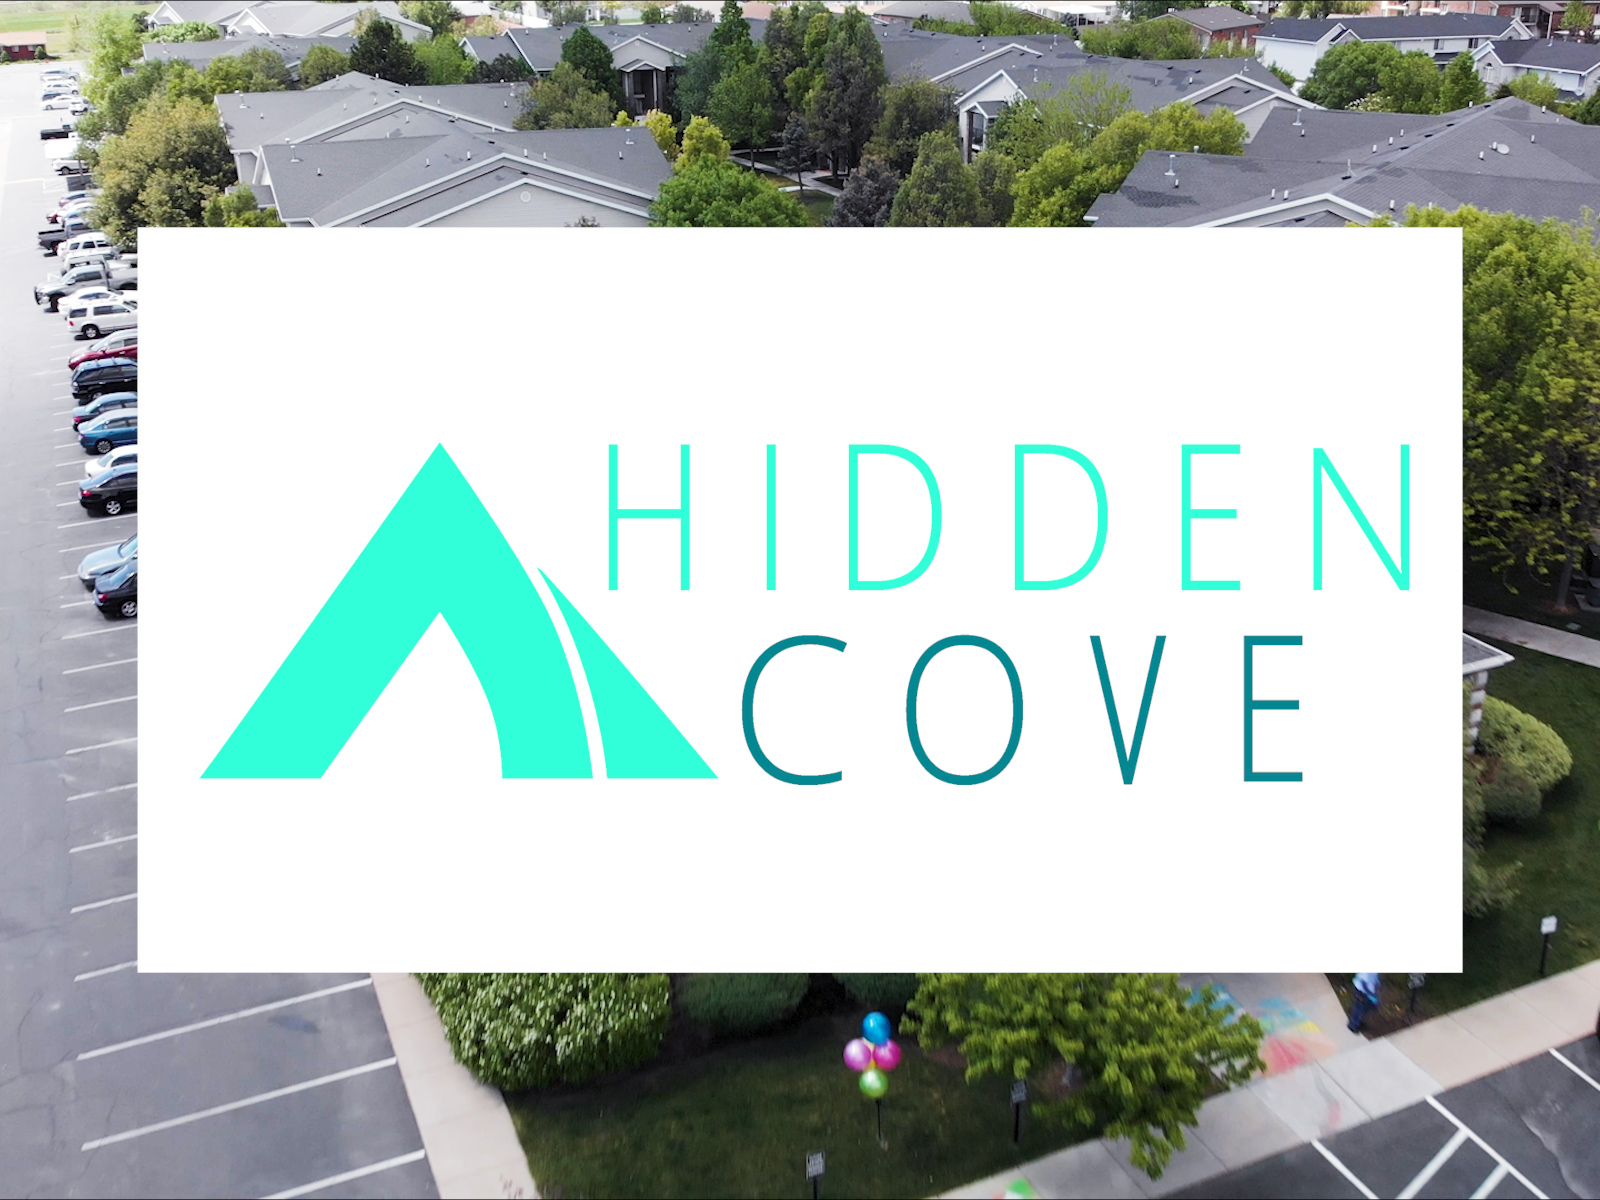 Take a tour of Hidden Cove Apartments from the comfort of your very own home. Here, you can create the lifestyle that you have been waiting for. Join us today!